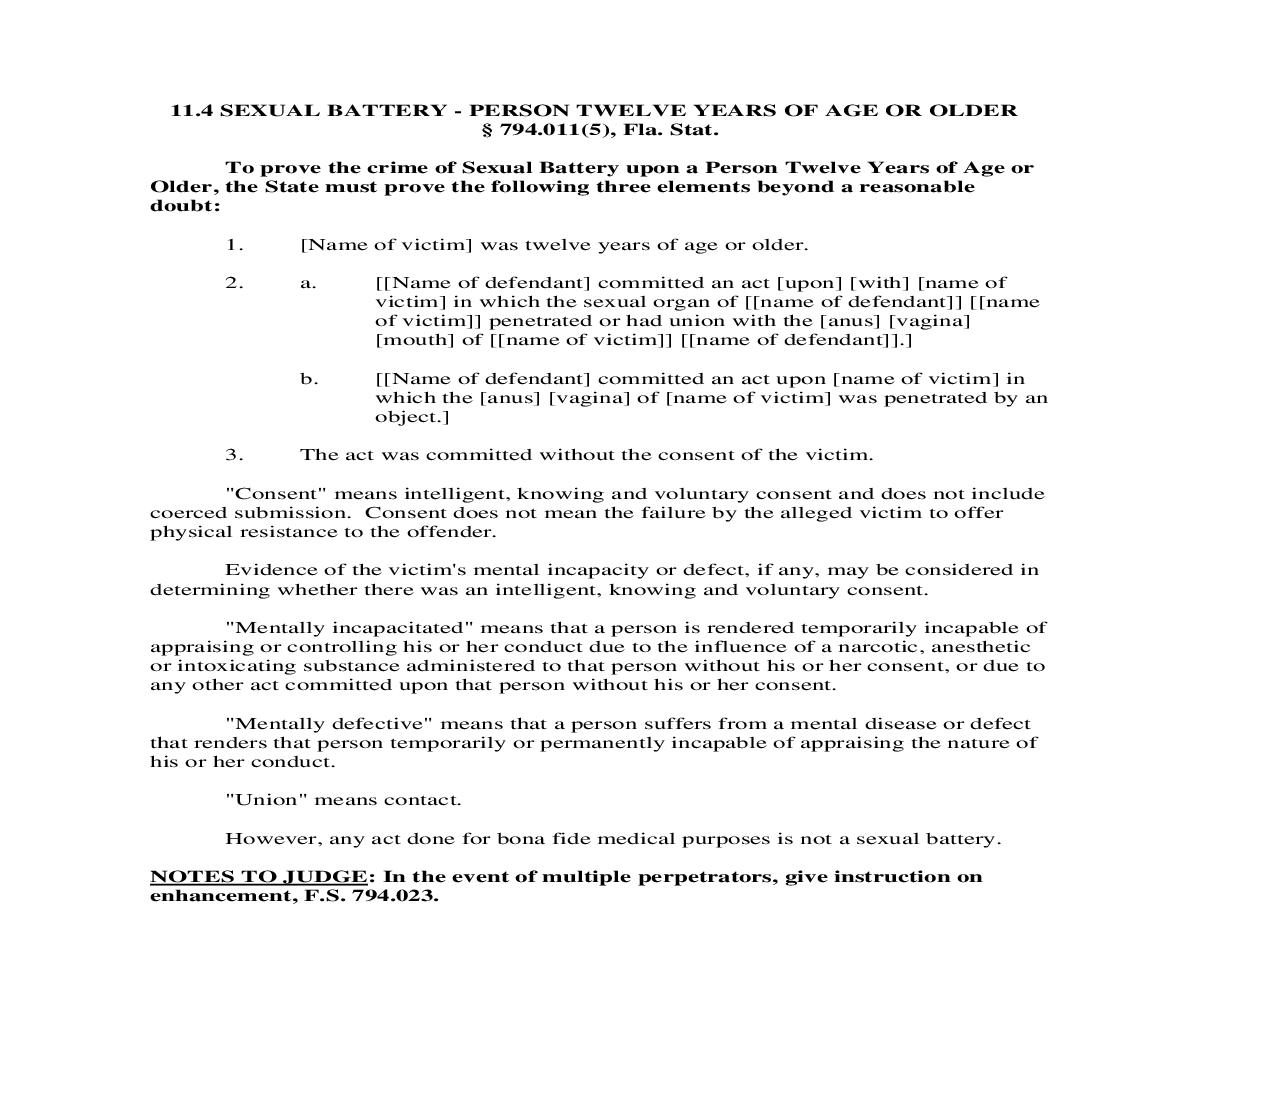 11.4. Sexual Battery - Person Twelve Years Of Age Or Older | Pdf Doc Docx | Florida_JI